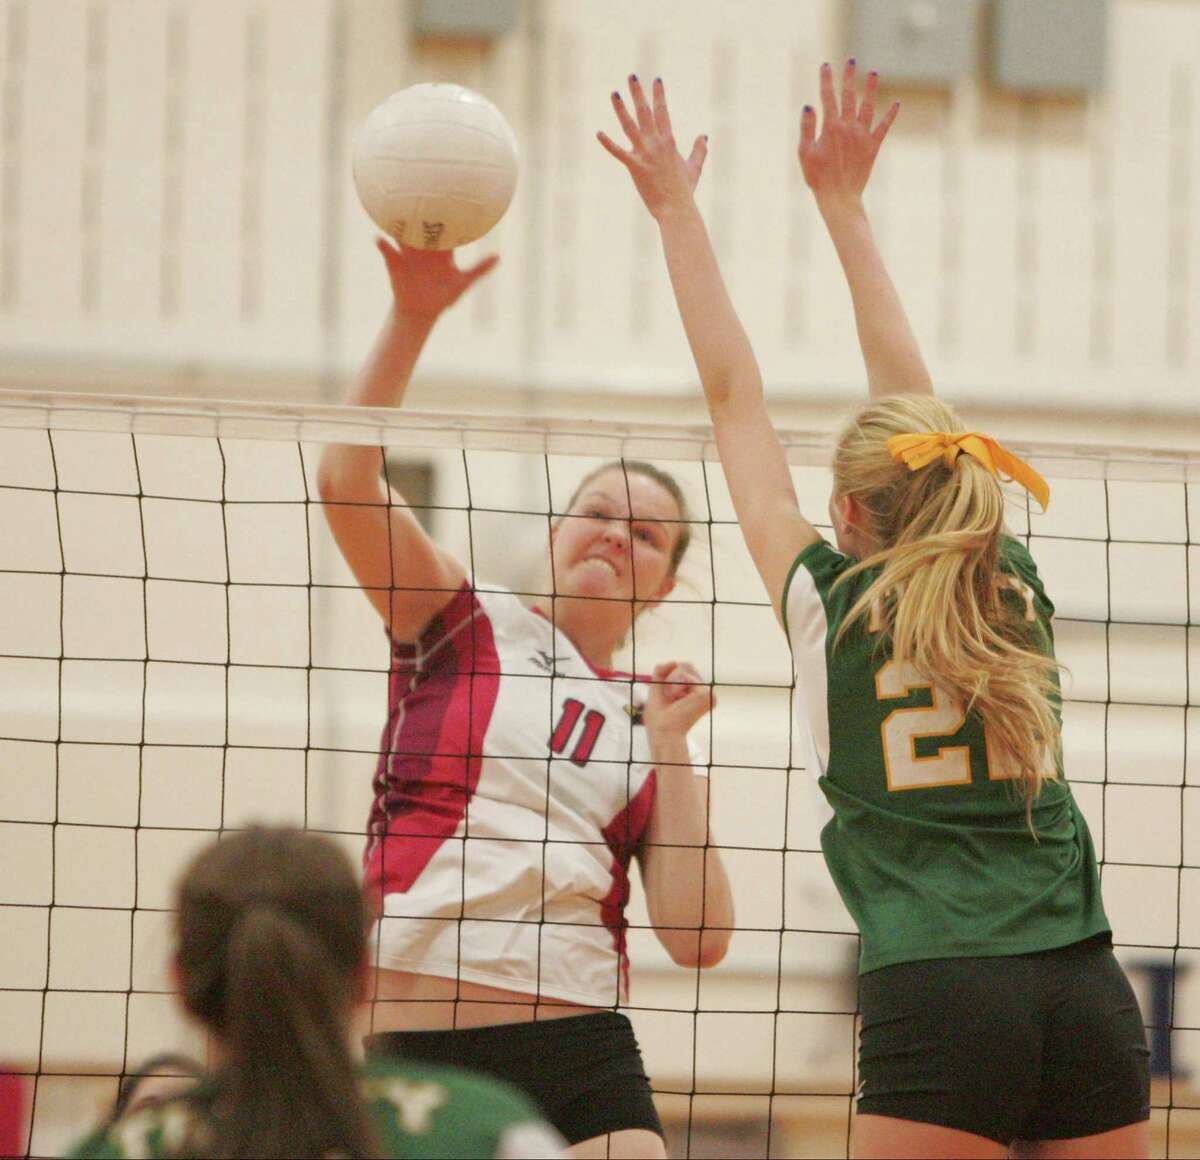 Greenwich's Abbie Wolf makes a hard return past the reach of Trinty's Riley Griffen in the second match. Greenwich went on to sweep Trinity Catholic, 25-21, 25-10, 25-12, running its record to 11-1 in the FCIAC match played in Greenwich.